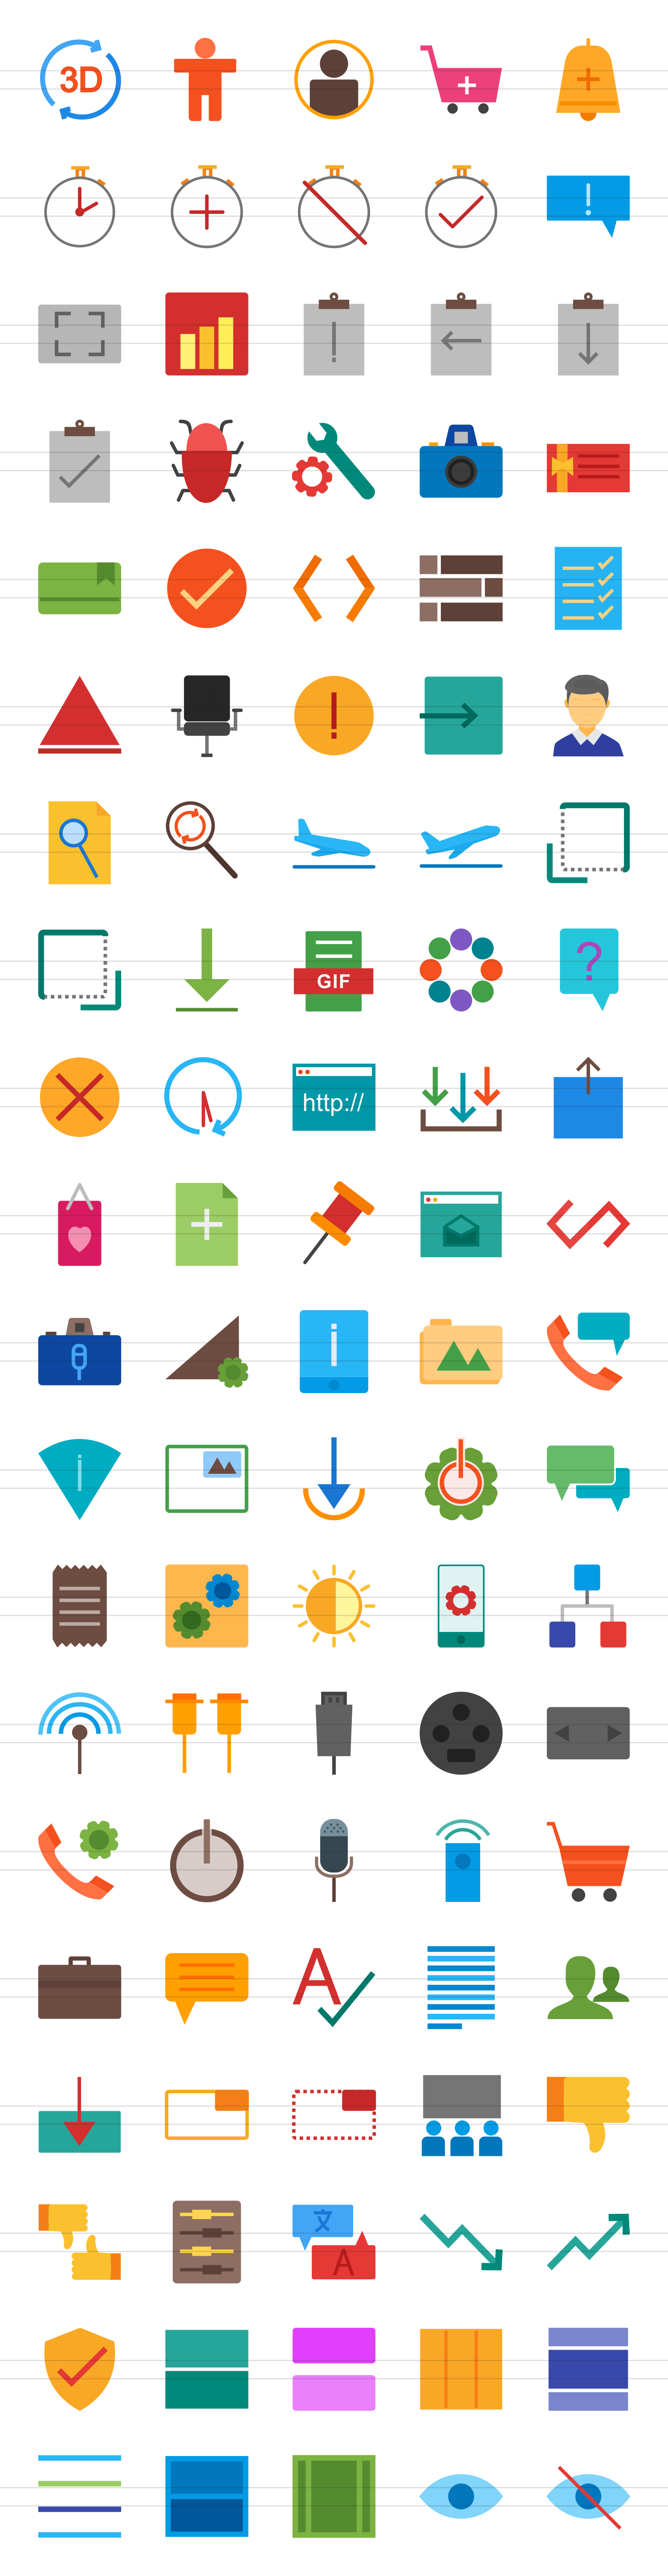 100 Material Design Flat Icons example image 2